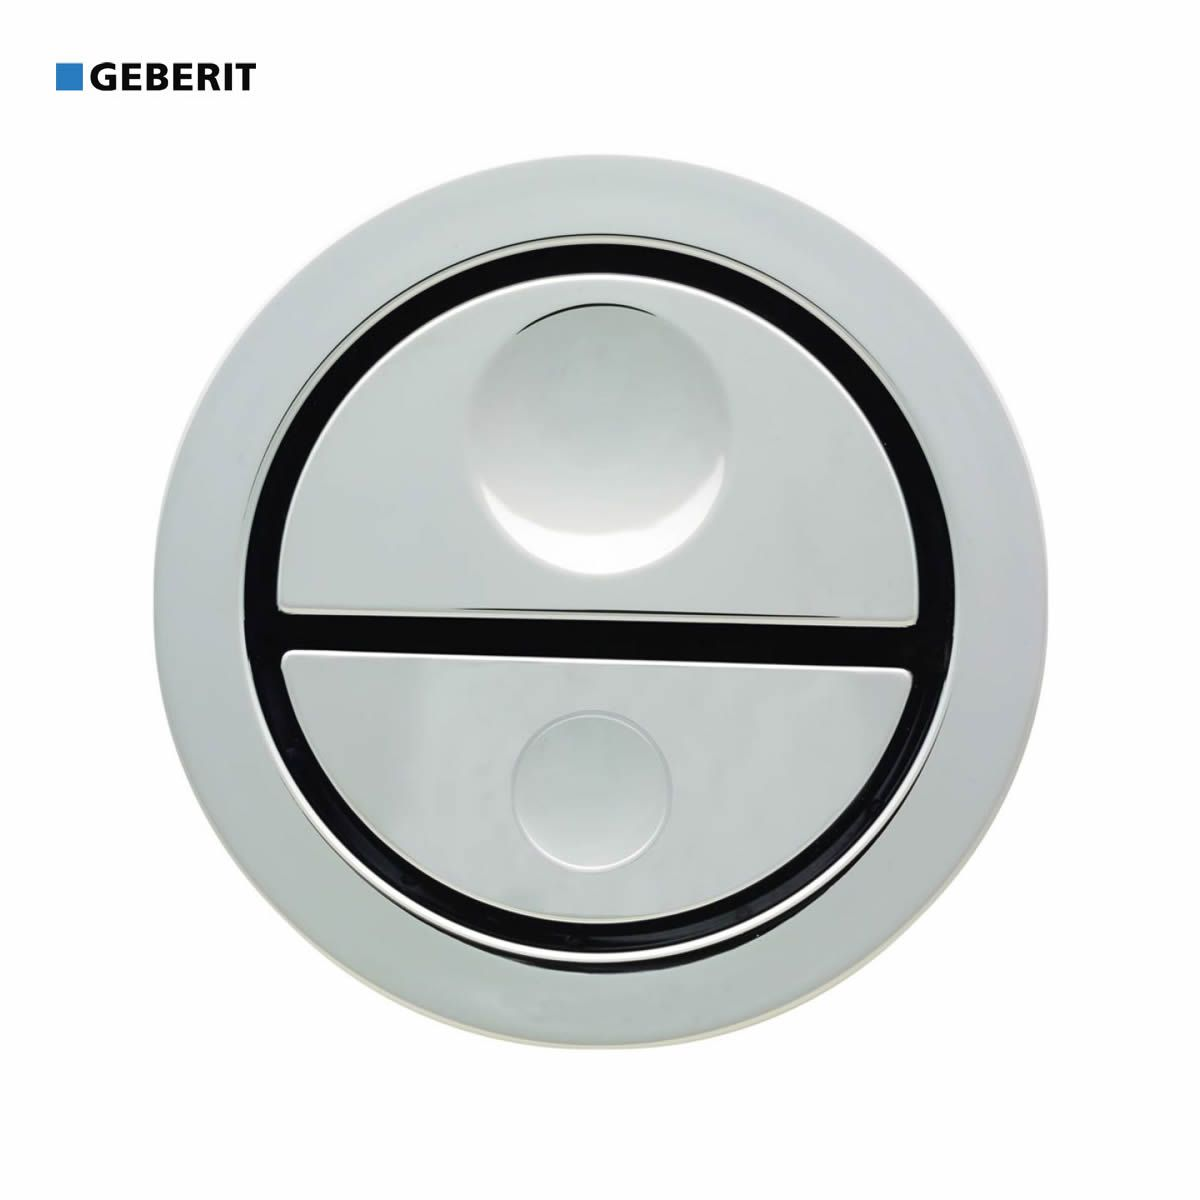 geberit dual flush pneumatic finger push button uk bathrooms. Black Bedroom Furniture Sets. Home Design Ideas